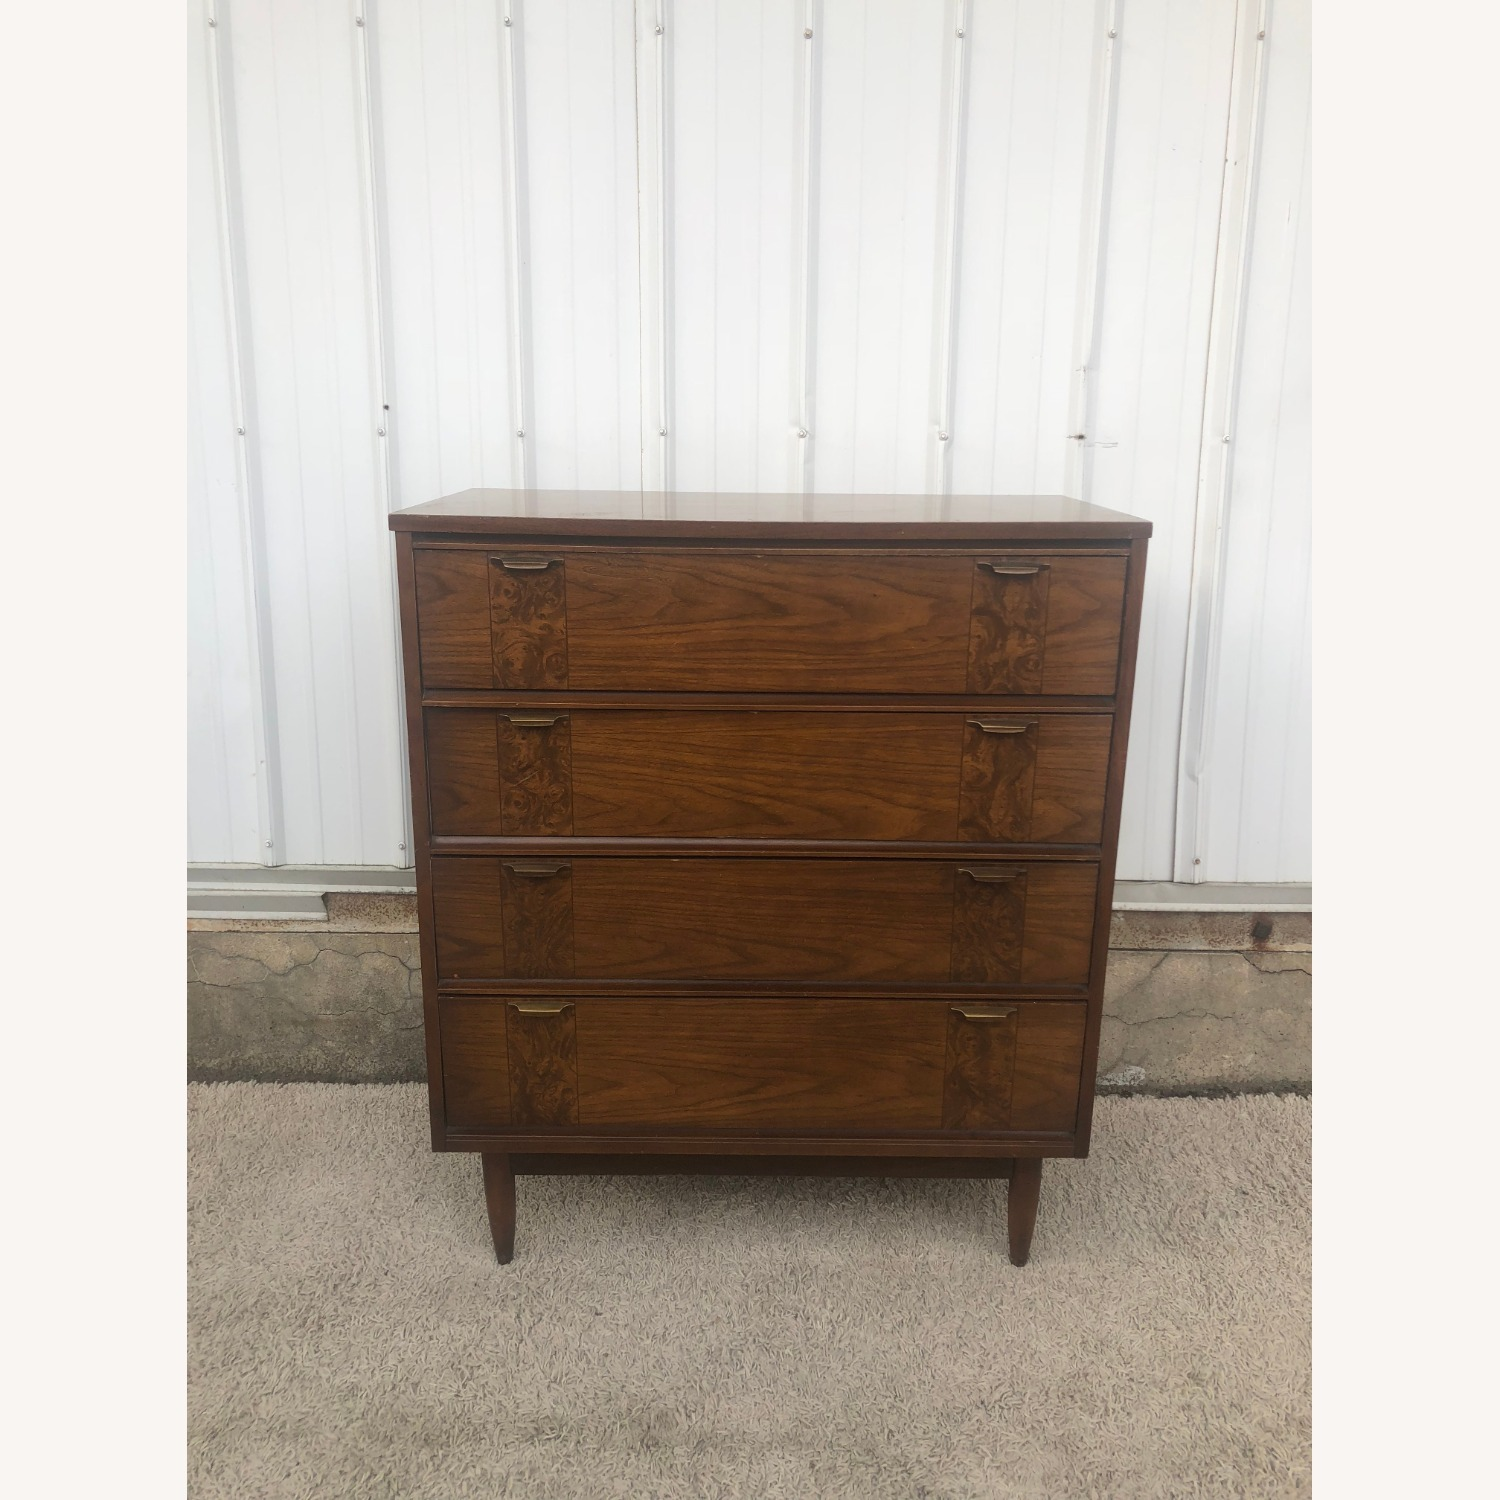 Mid Century Four Drawer Dresser with Burlwood - image-16